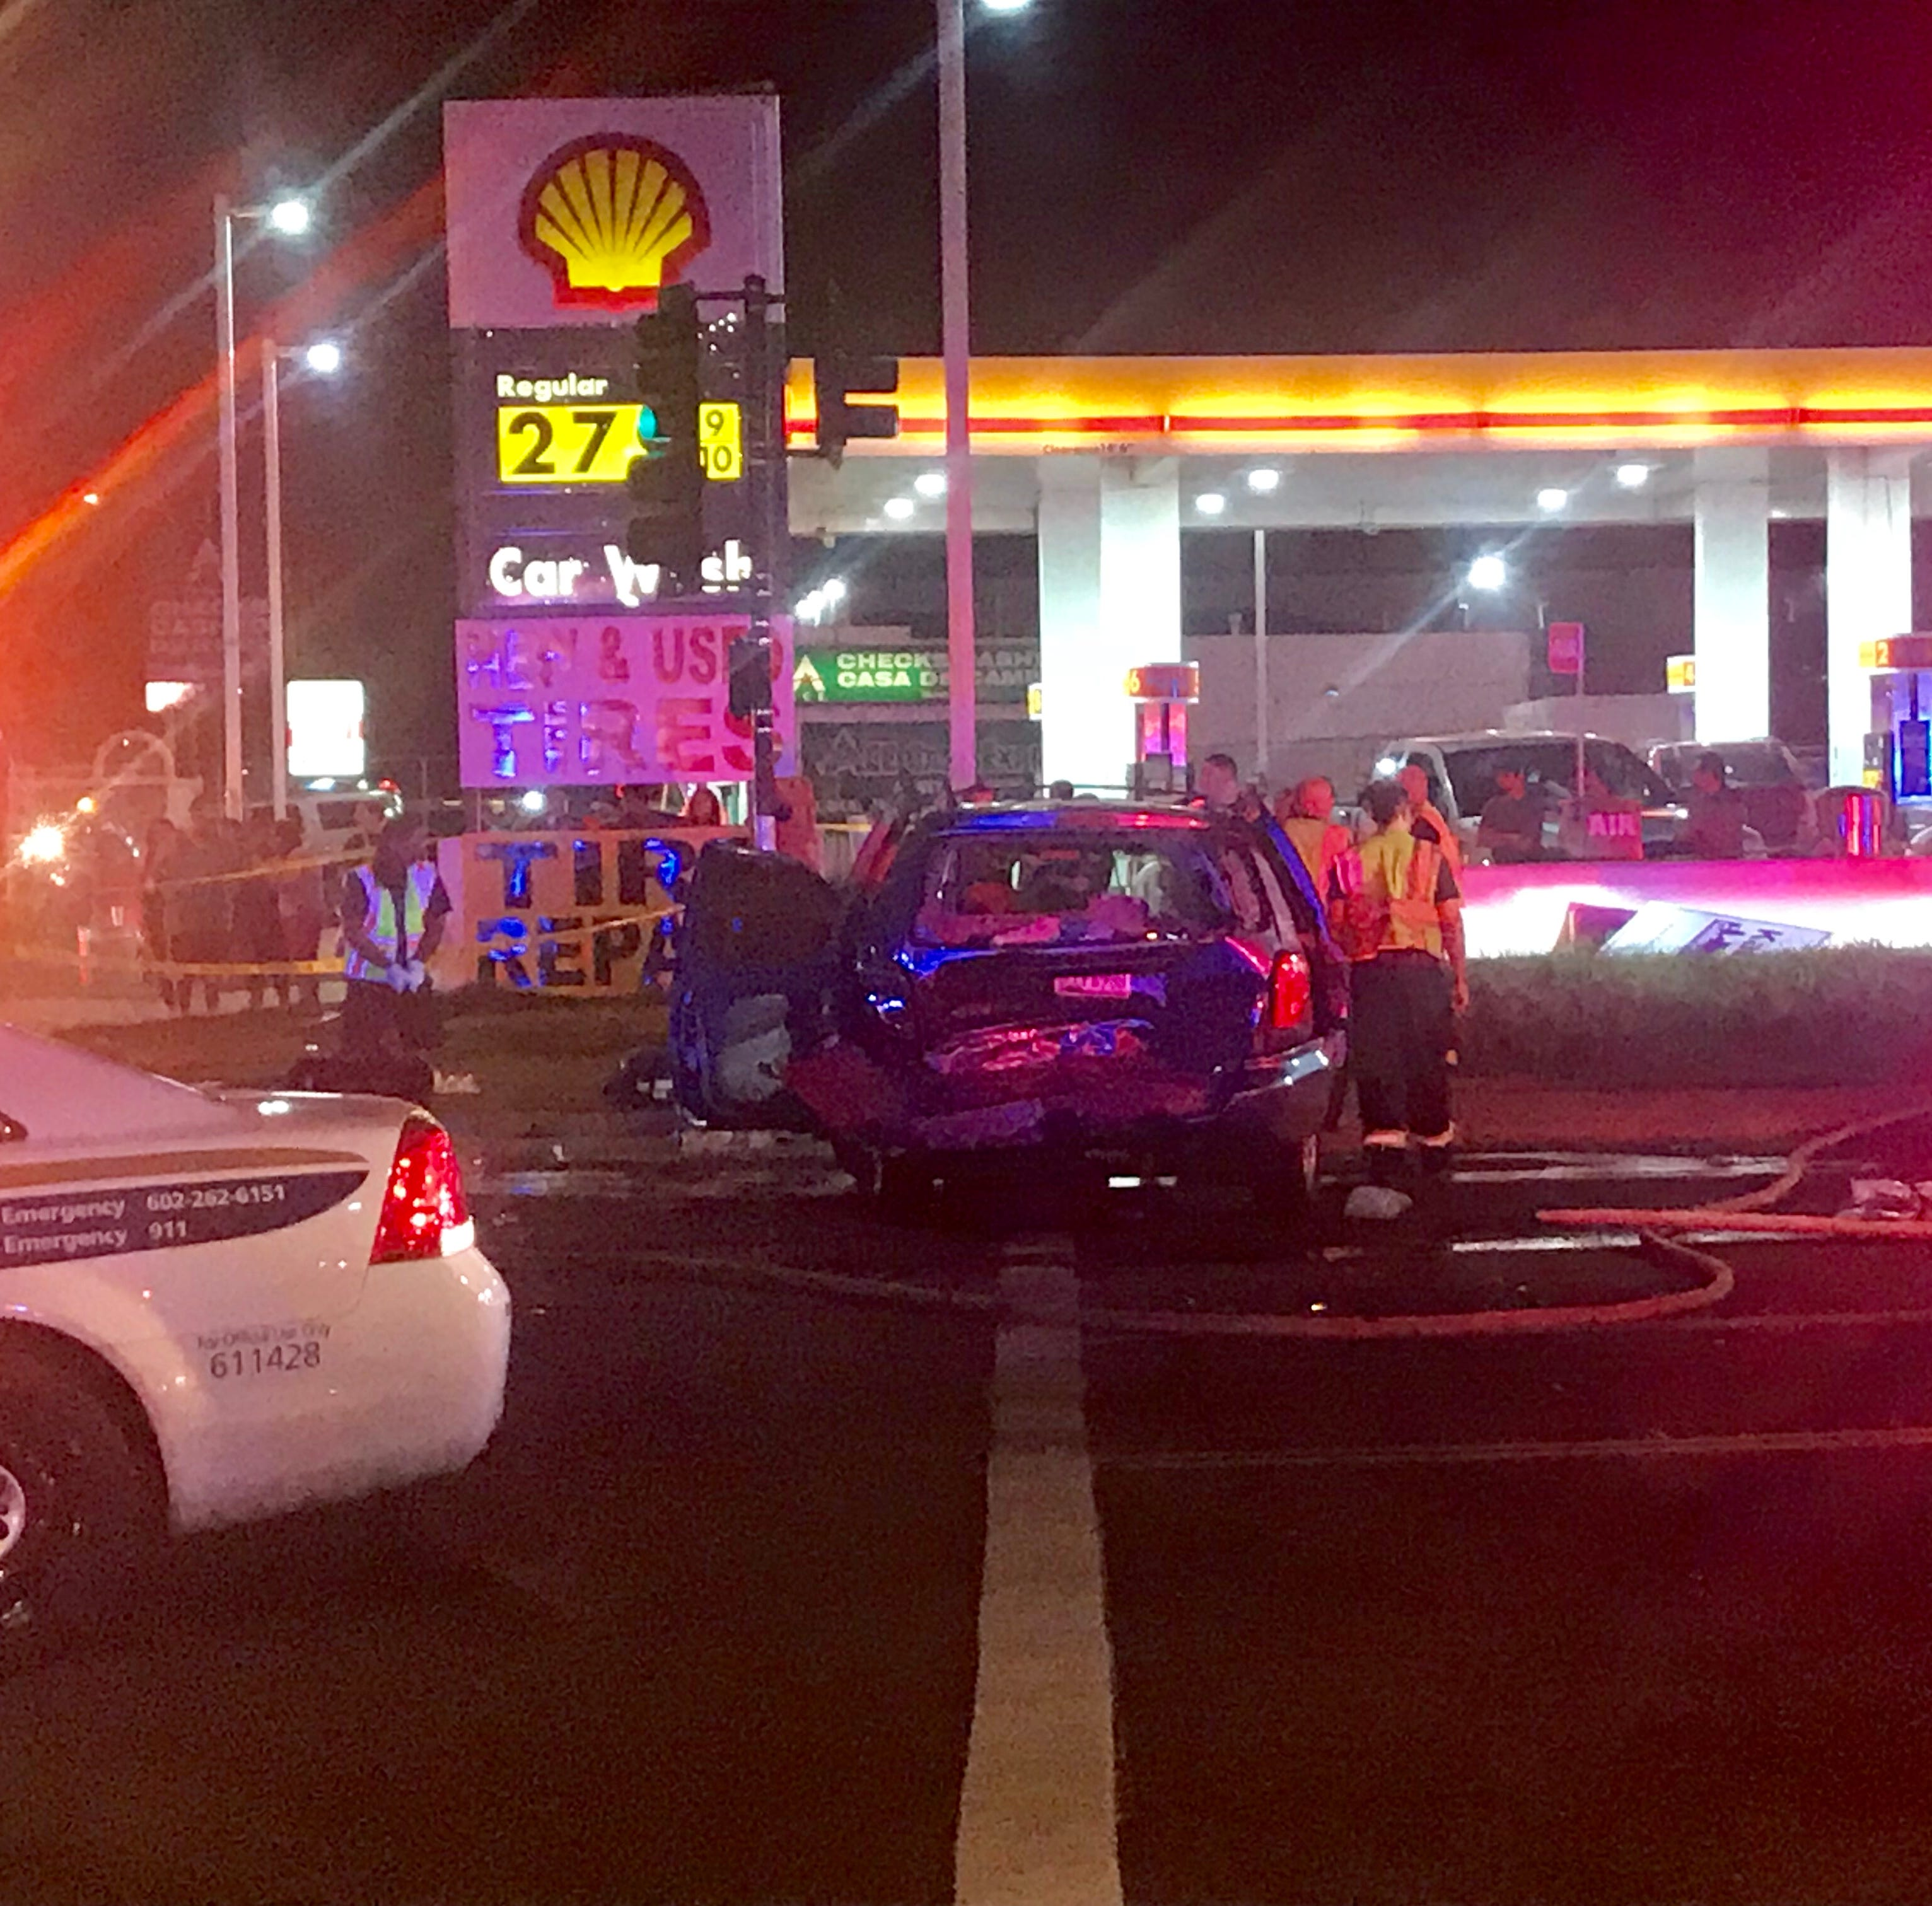 6 critically injured in Phoenix crash, officials say